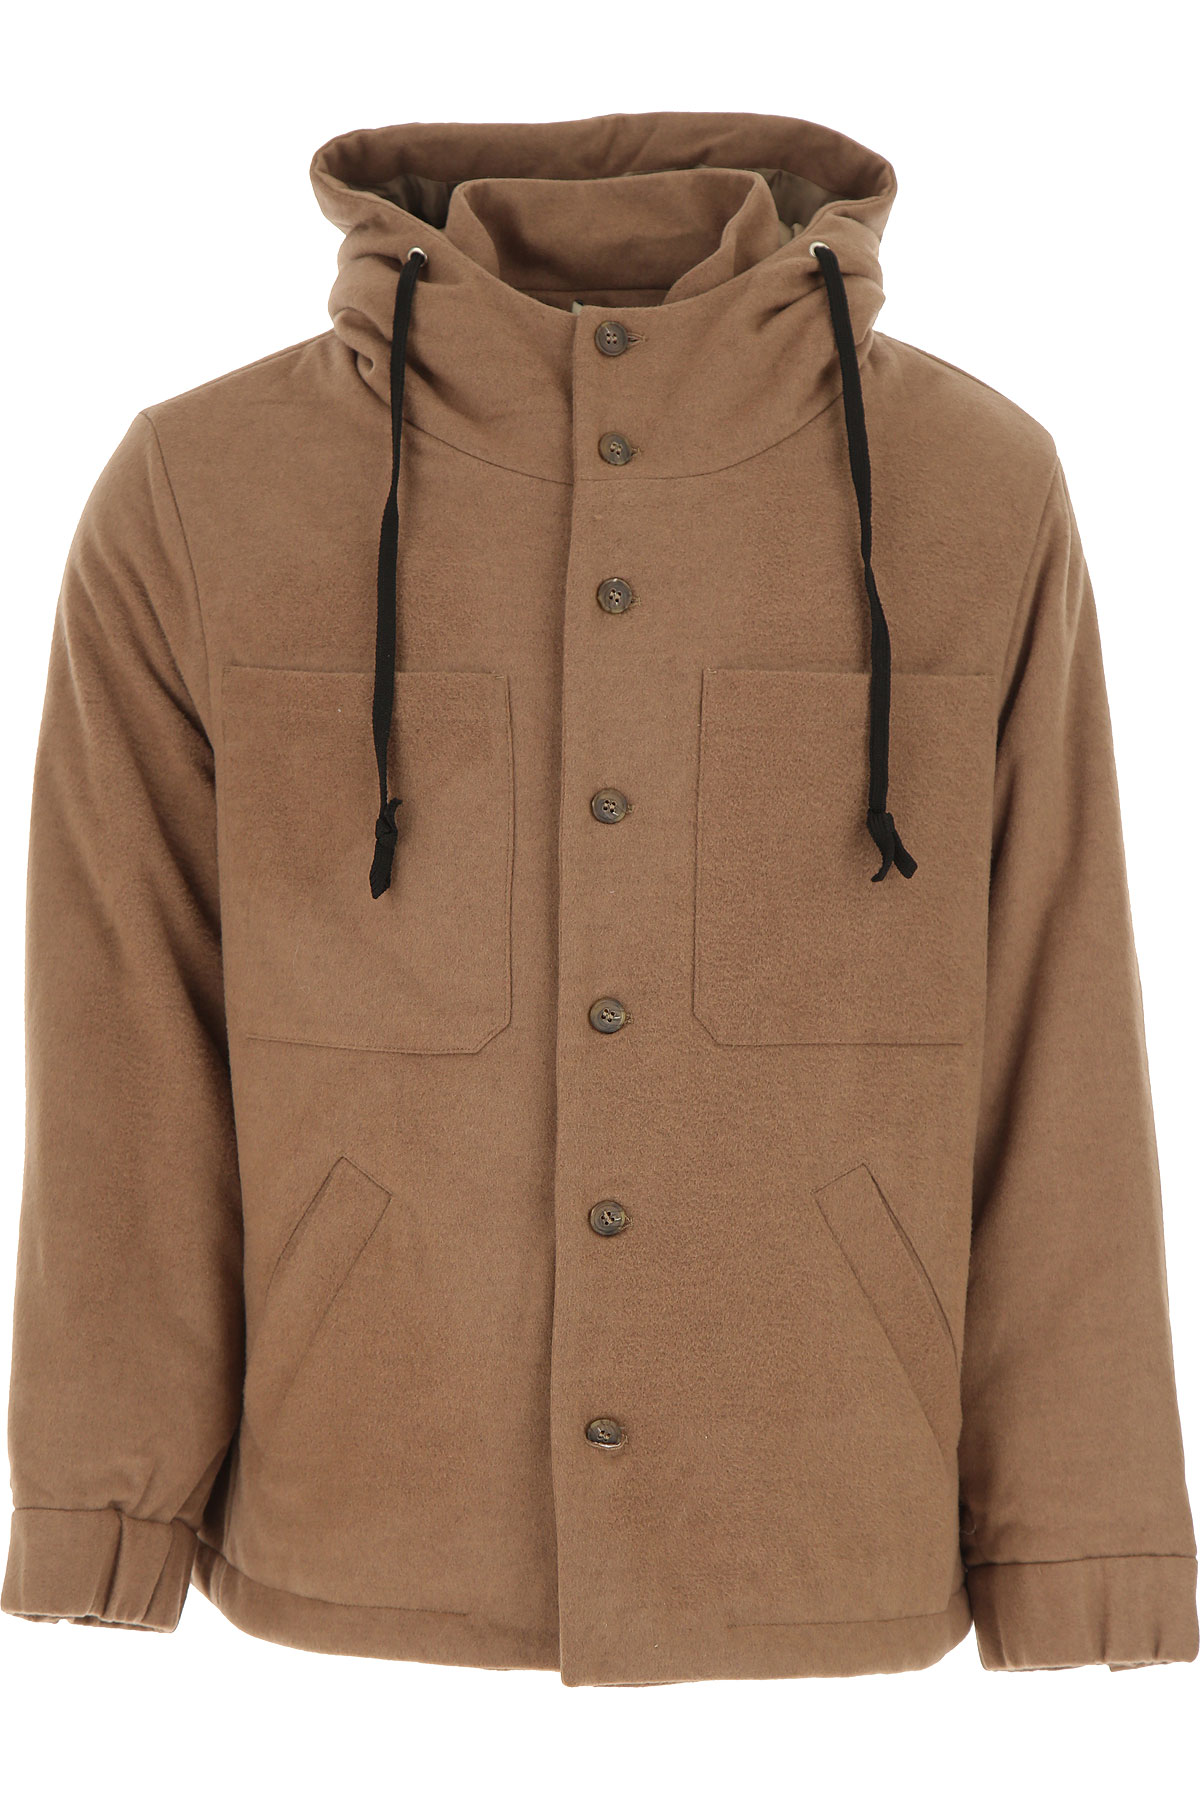 Image of Maison Flaneur Jacket for Men, Camel, Wool, 2017, M S XL